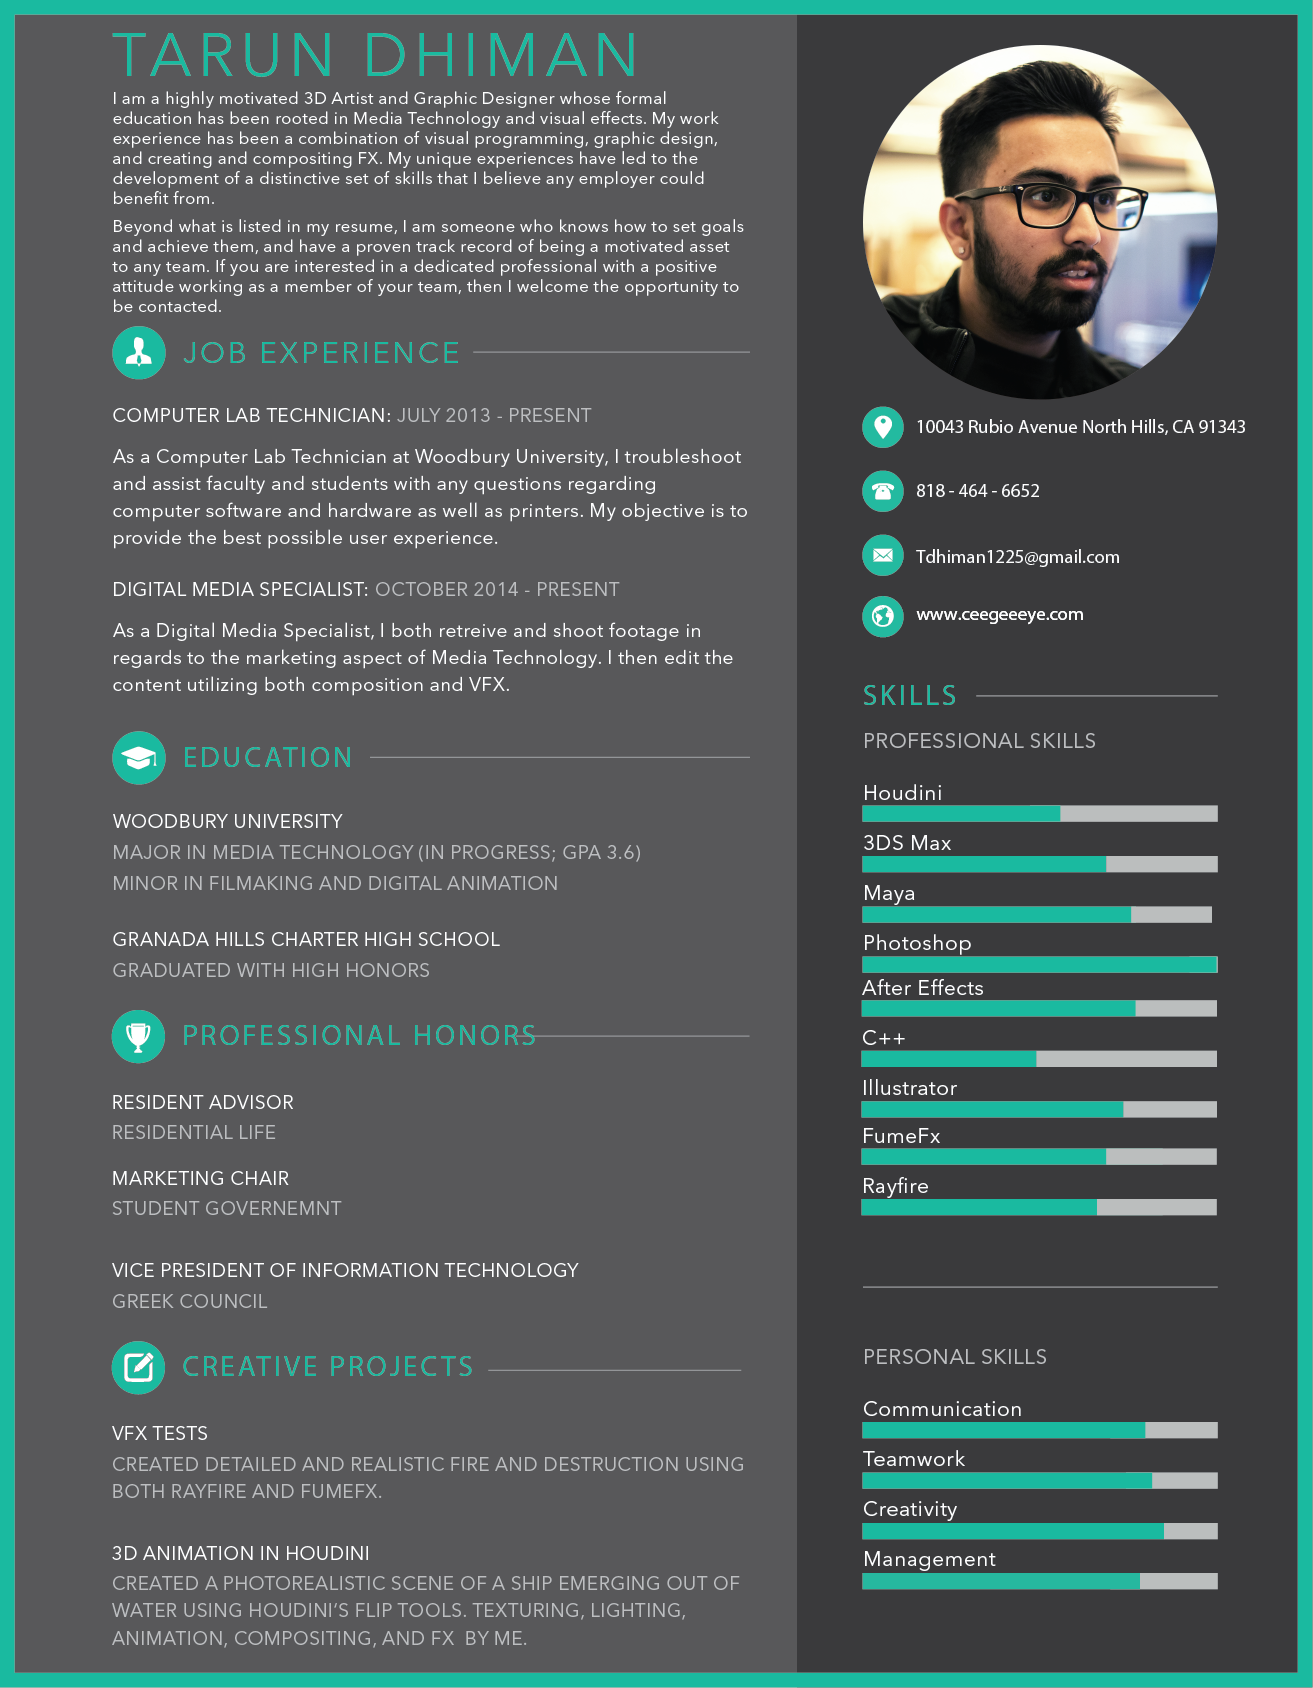 Magnificent Vfx Artist Fresher Resume Pictures Inspiration